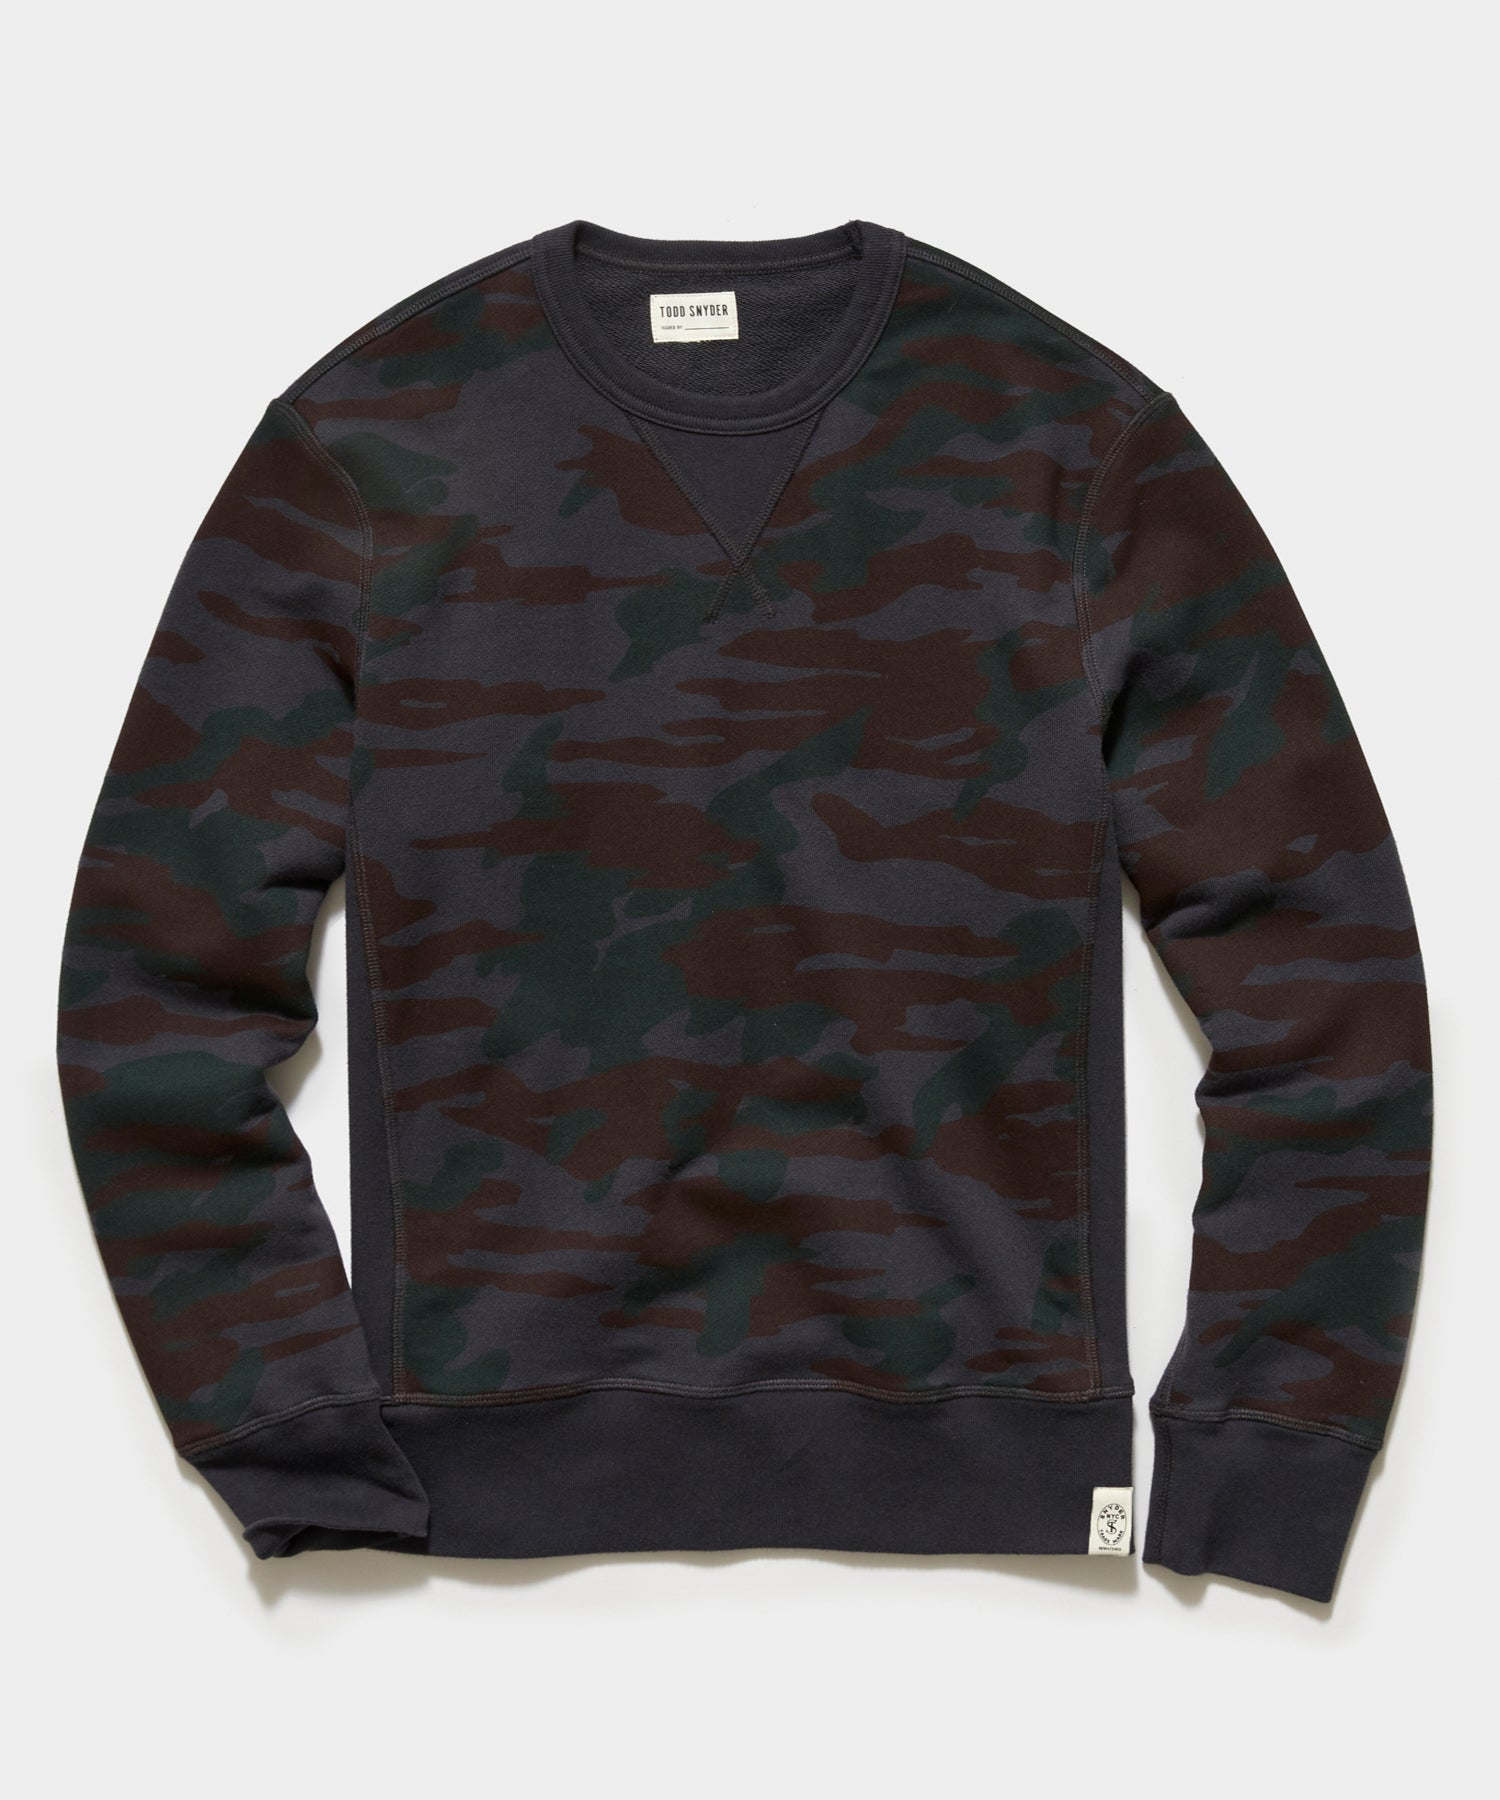 Camo Crewneck Sweatshirt in Dark Coal